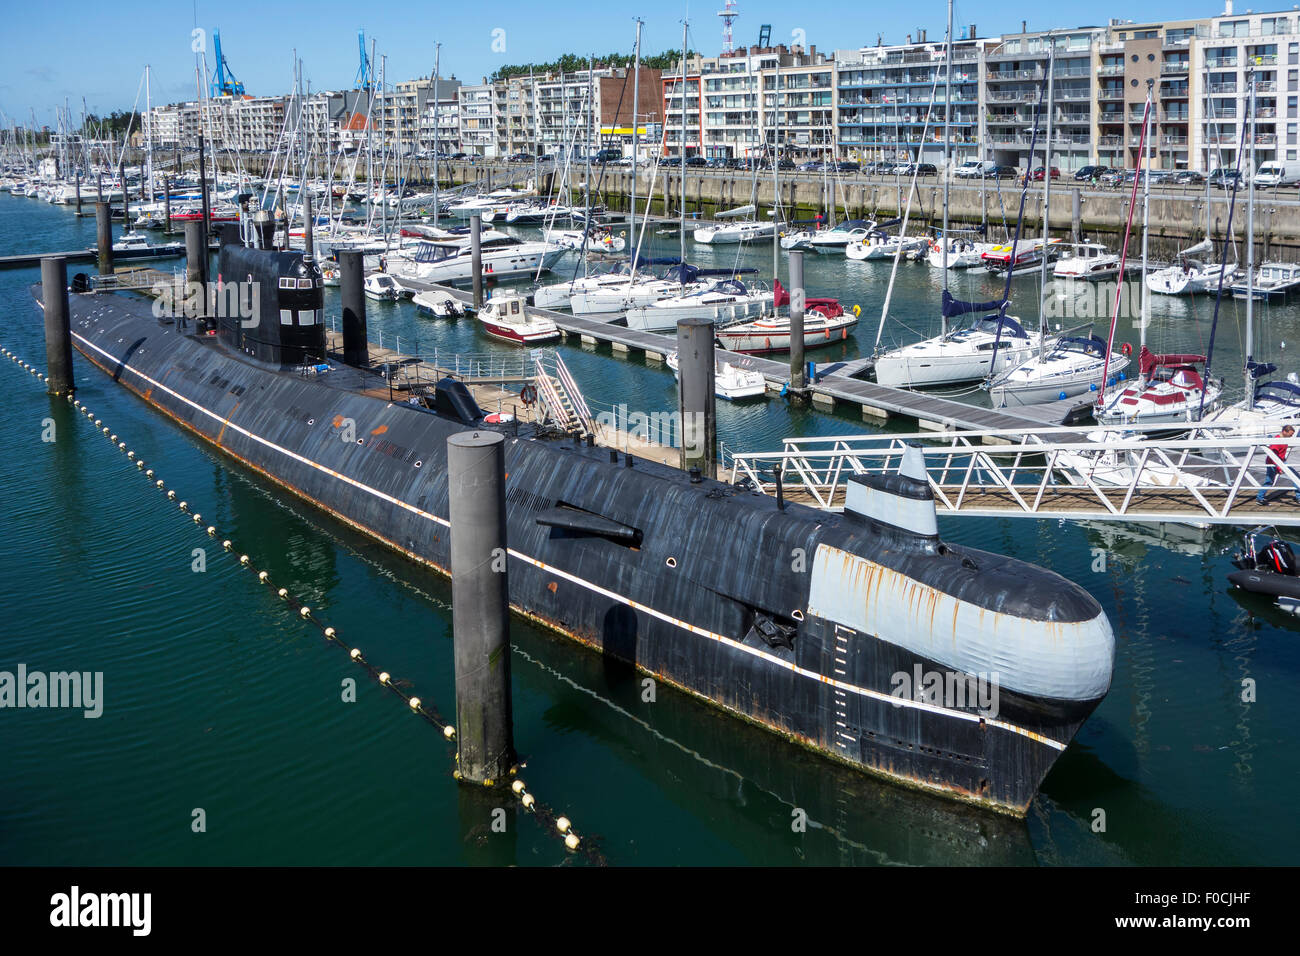 Russian diesel-electric submarine B-143 / U-480 Foxtrot type 641 at the Seafront Maritime Theme Park in Zeebrugge, - Stock Image